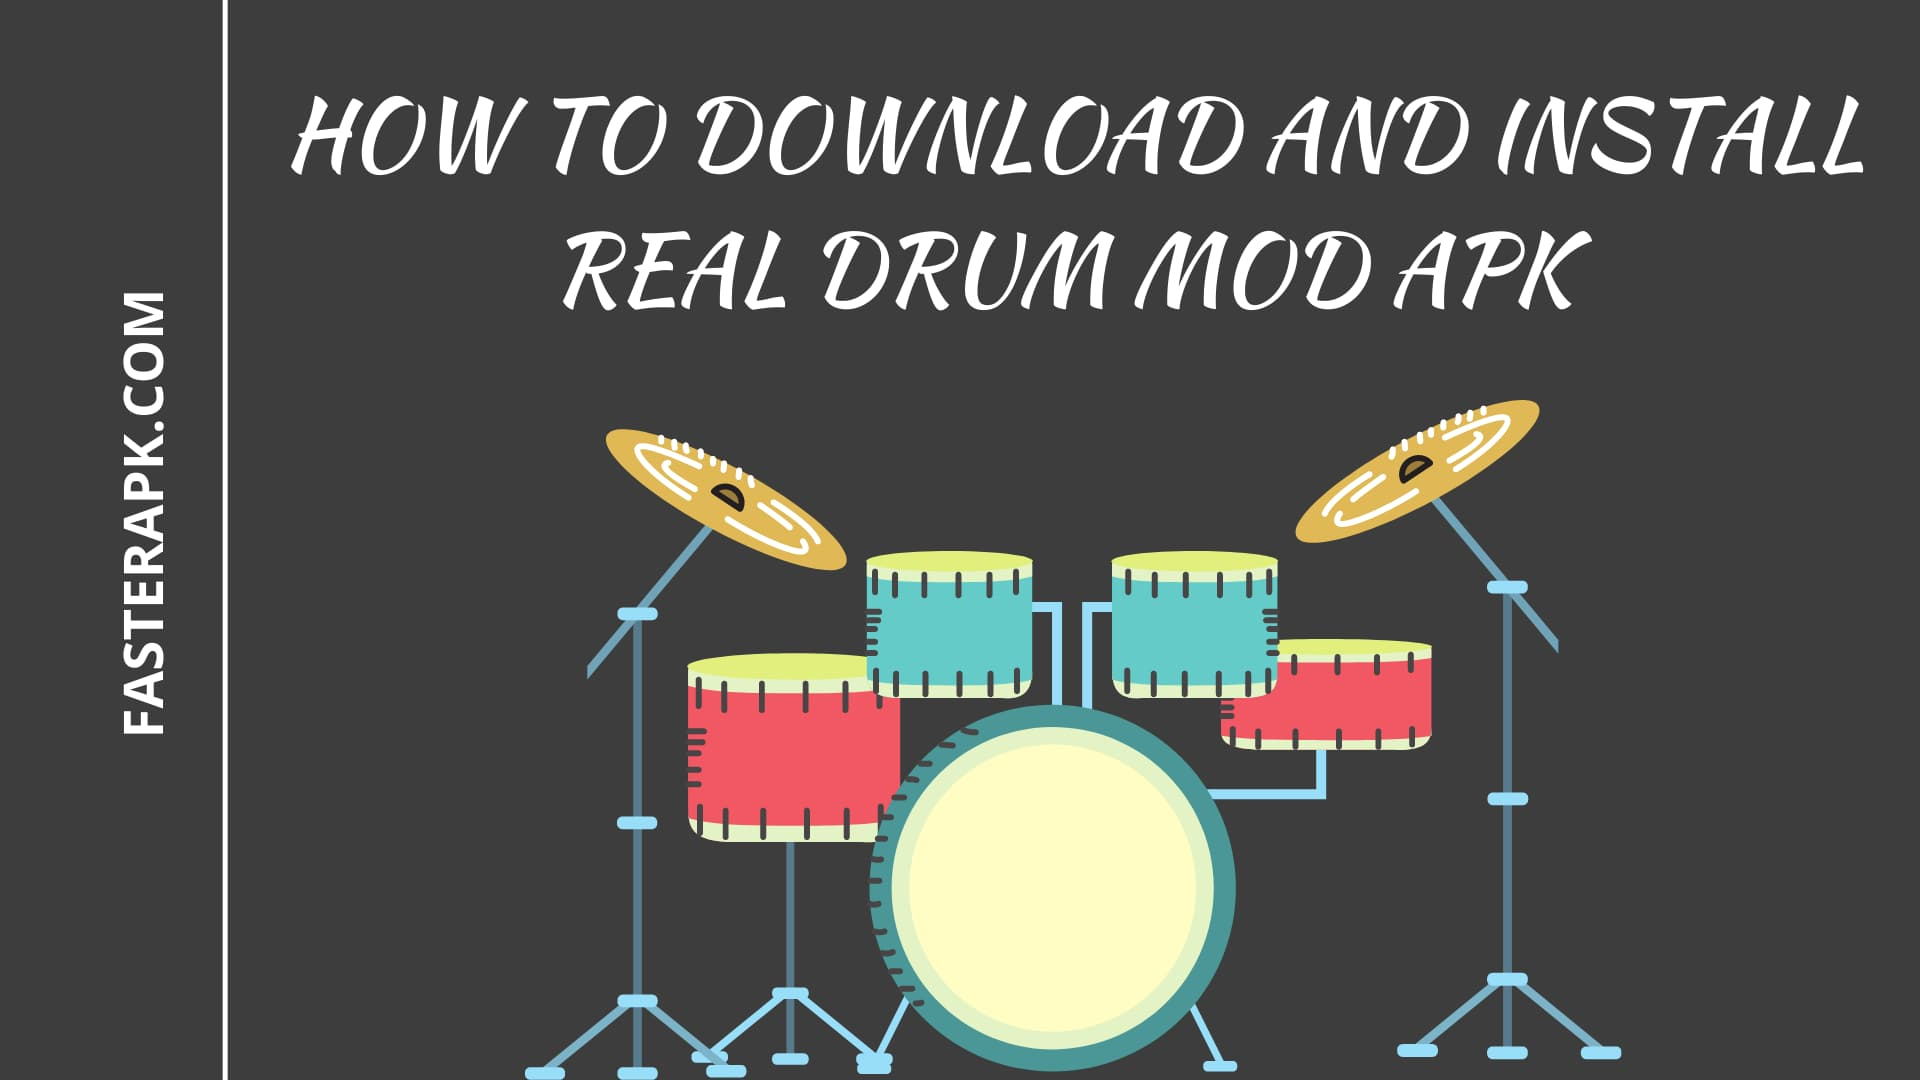 How to Download And install Real Drum mod apk.